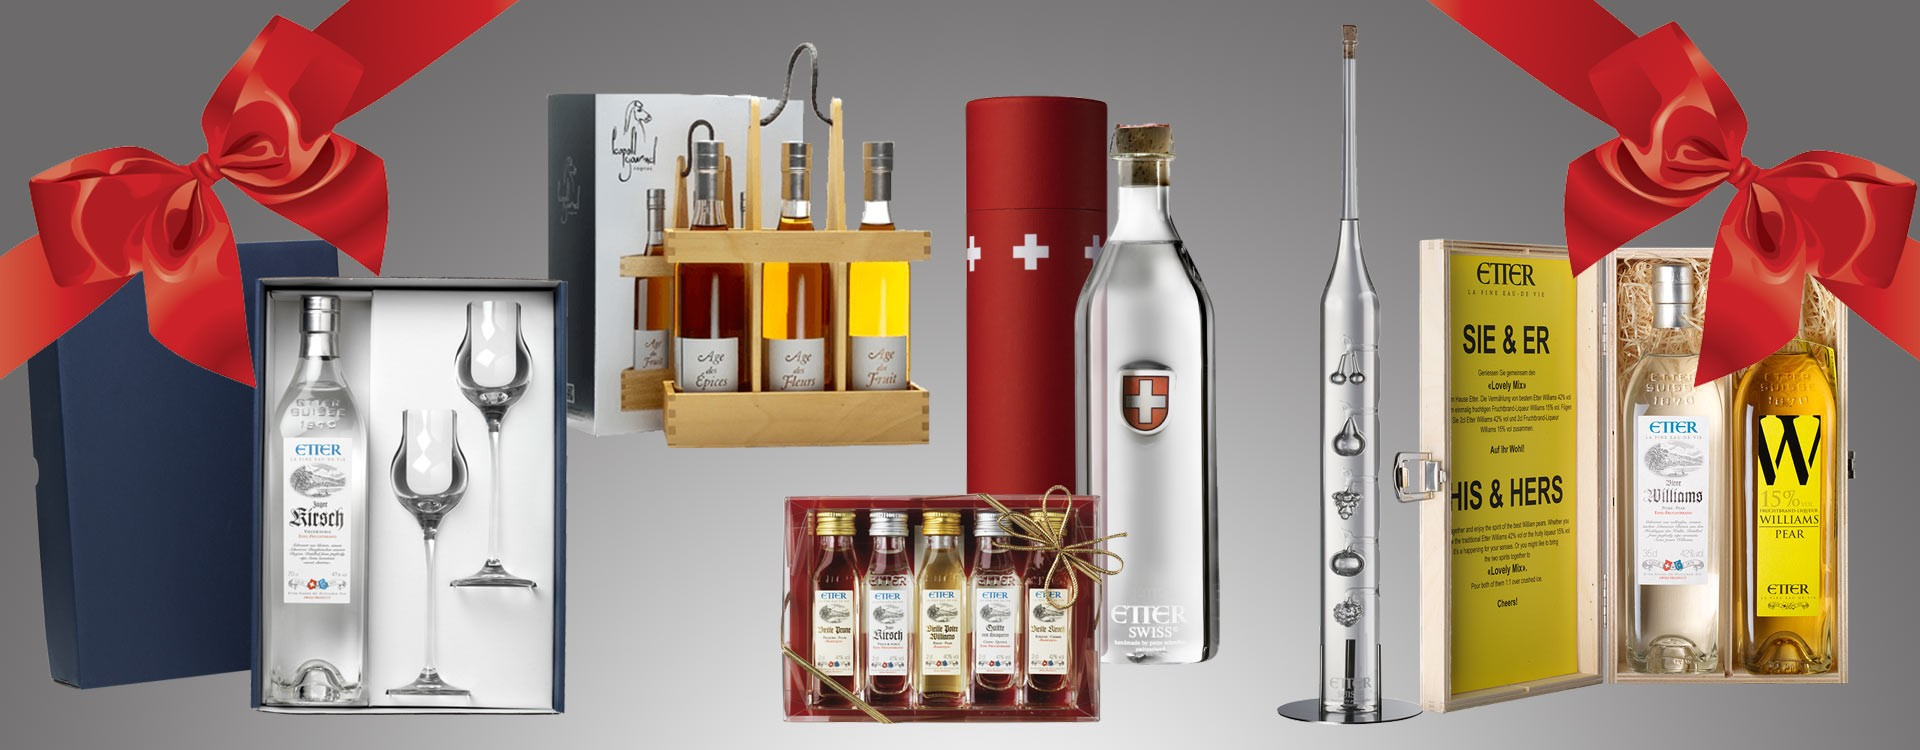 Ideas of somptuous gifts Brandy, Cognac, Kirsch, Rum